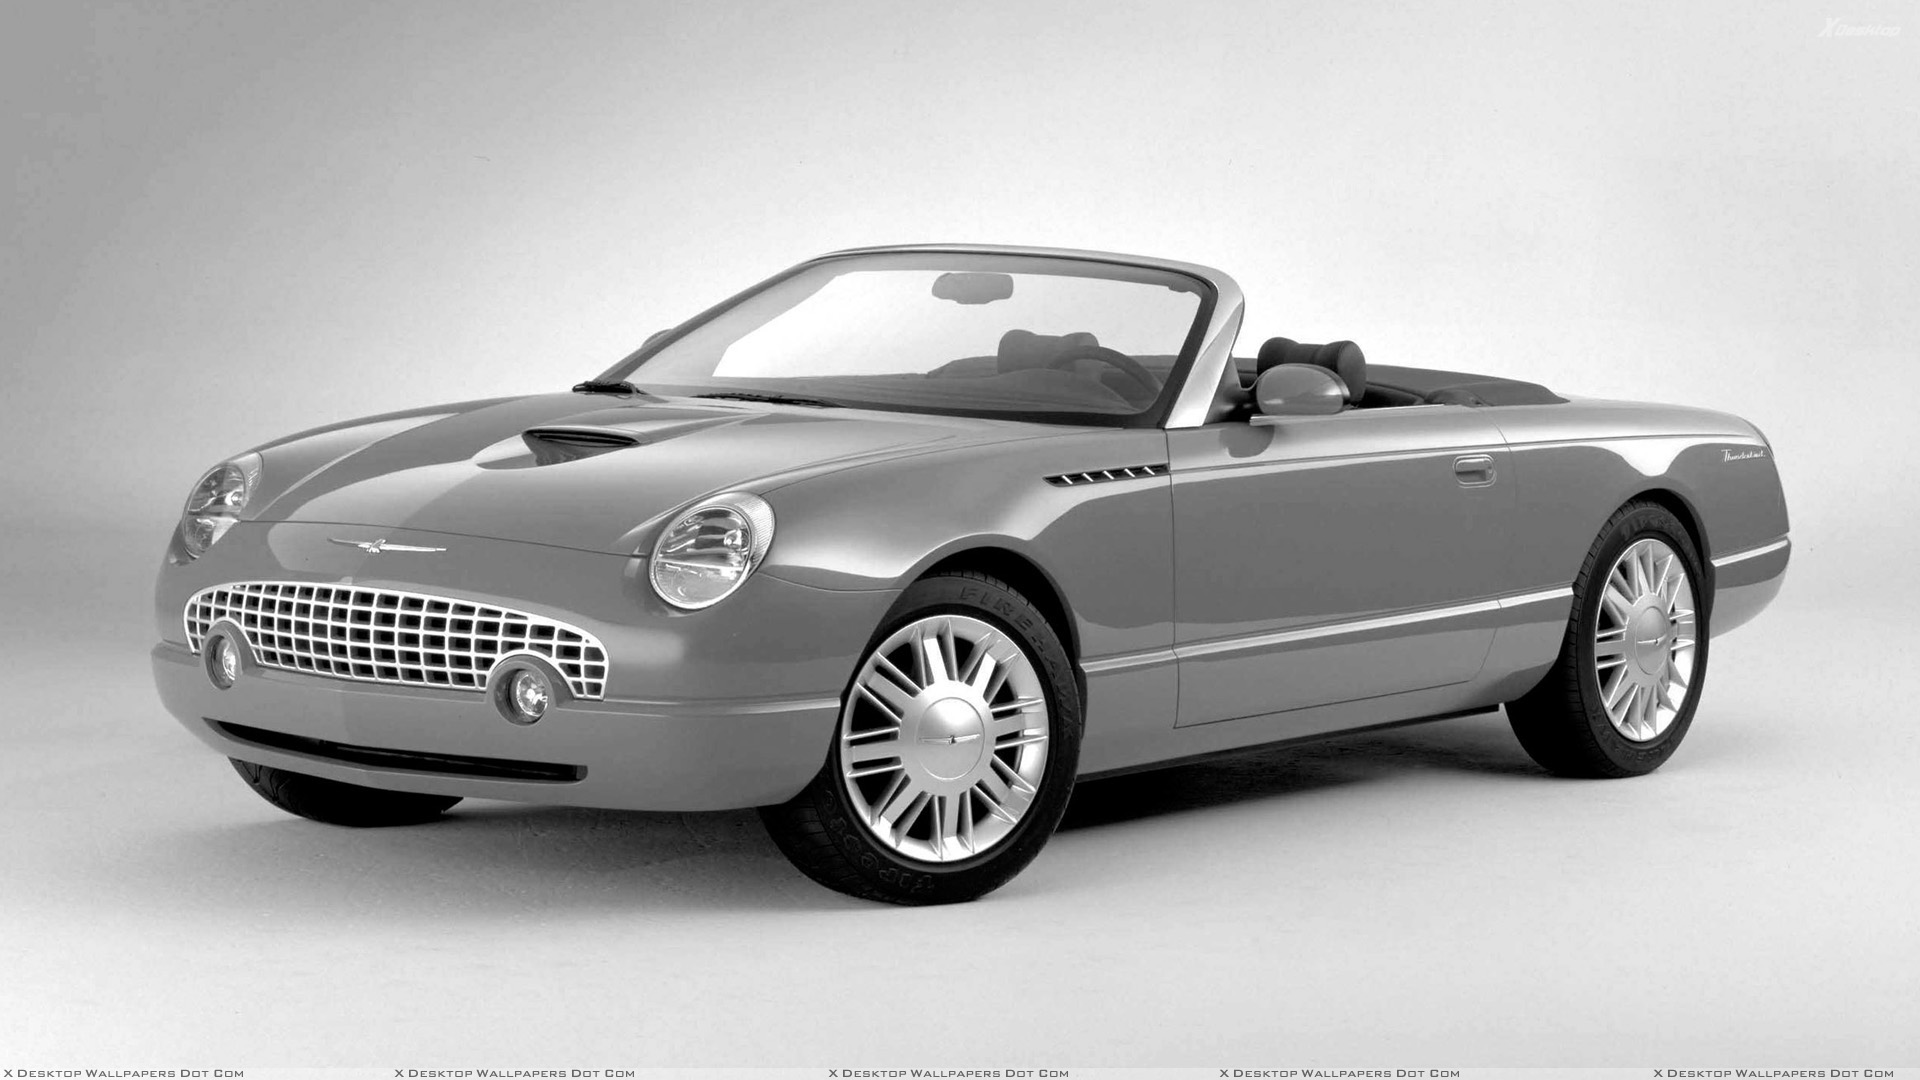 Ford Thunderbird Wallpapers Photos Images In HD